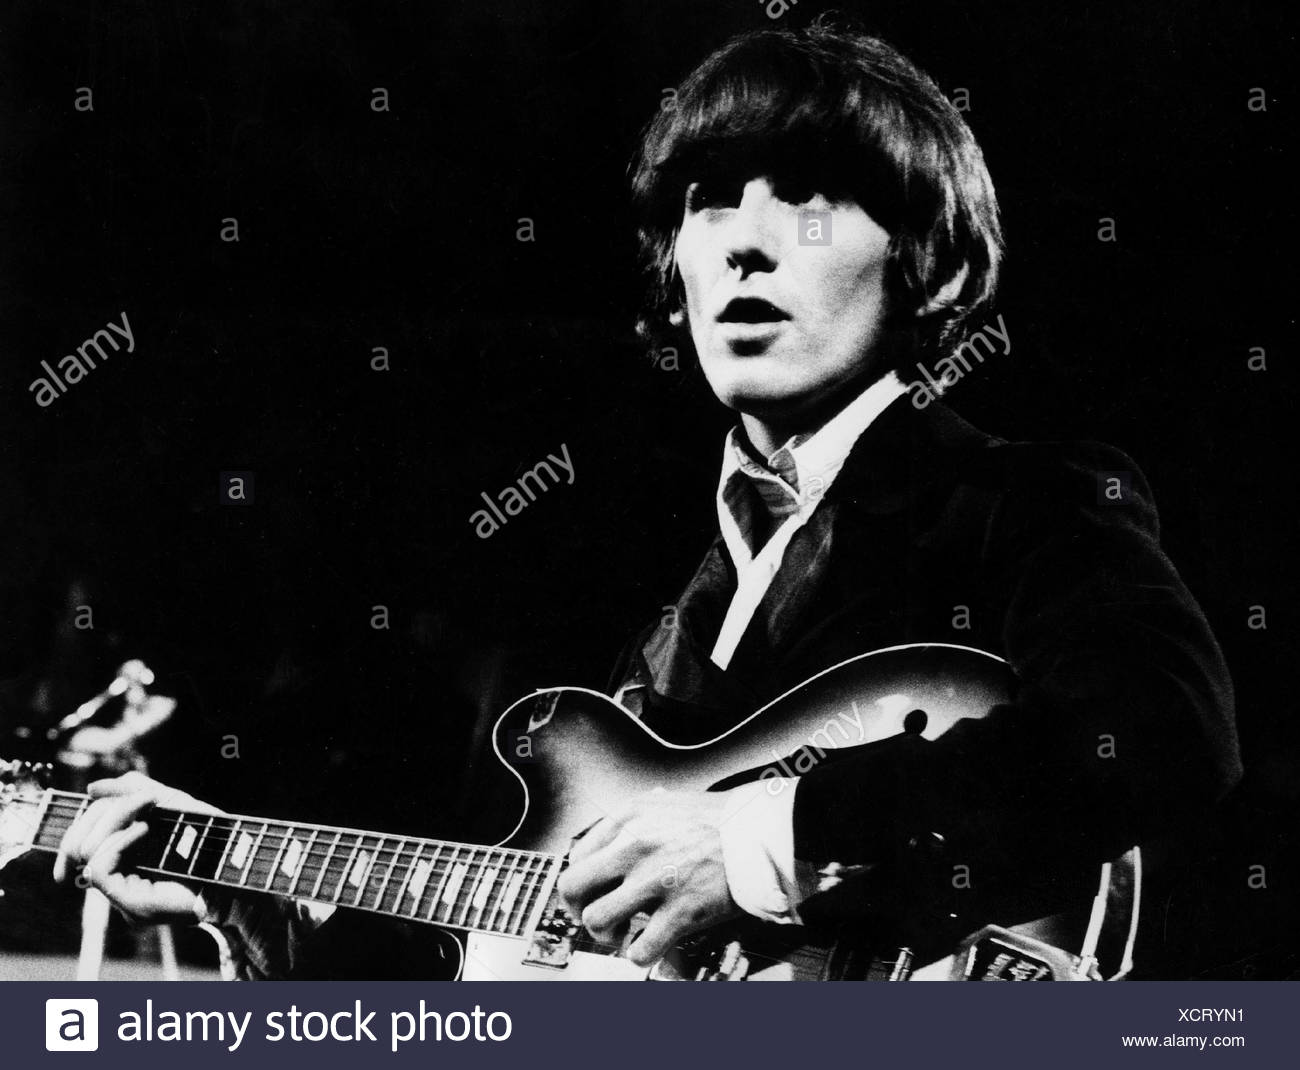 Harrison, George, 25.2.1943 - 29.11.2001, British musician, at a perfomance of  'The Beatles', half length, 1966, Additional-Rights-Clearances-NA - Stock Image